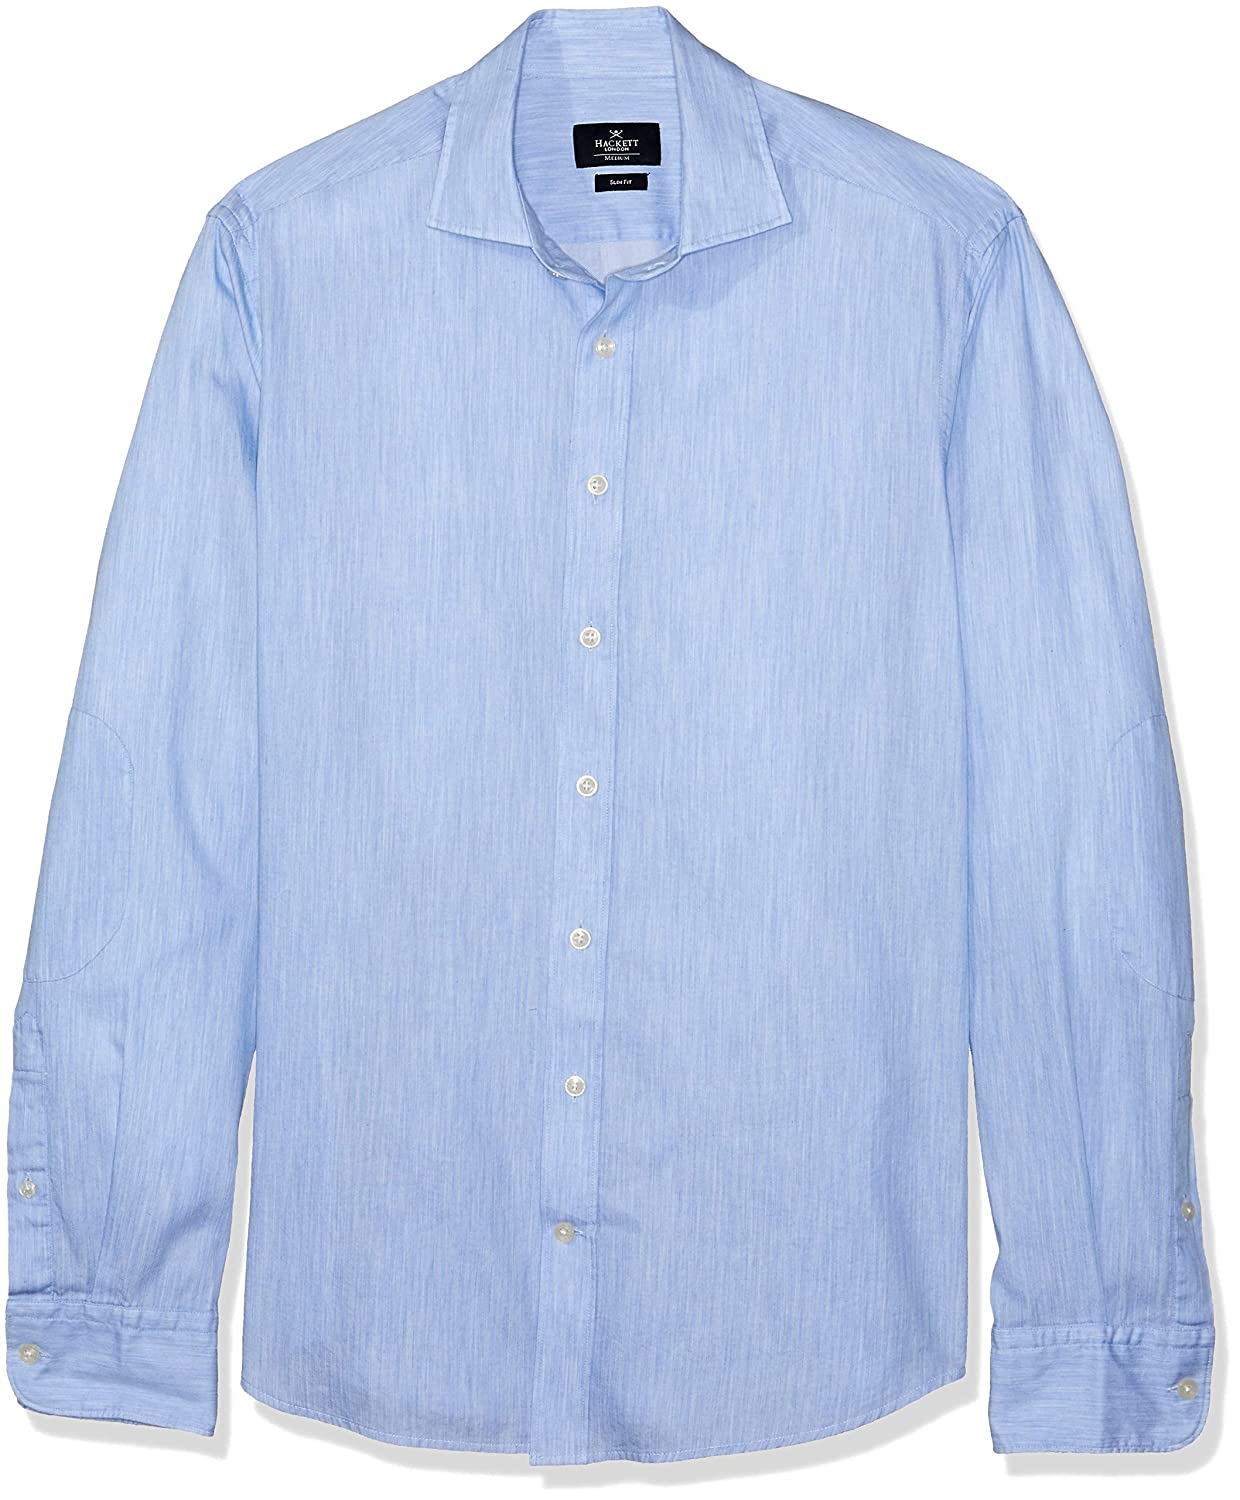 Hackett London Pl Melange Multi Trim, Camisa para Hombre